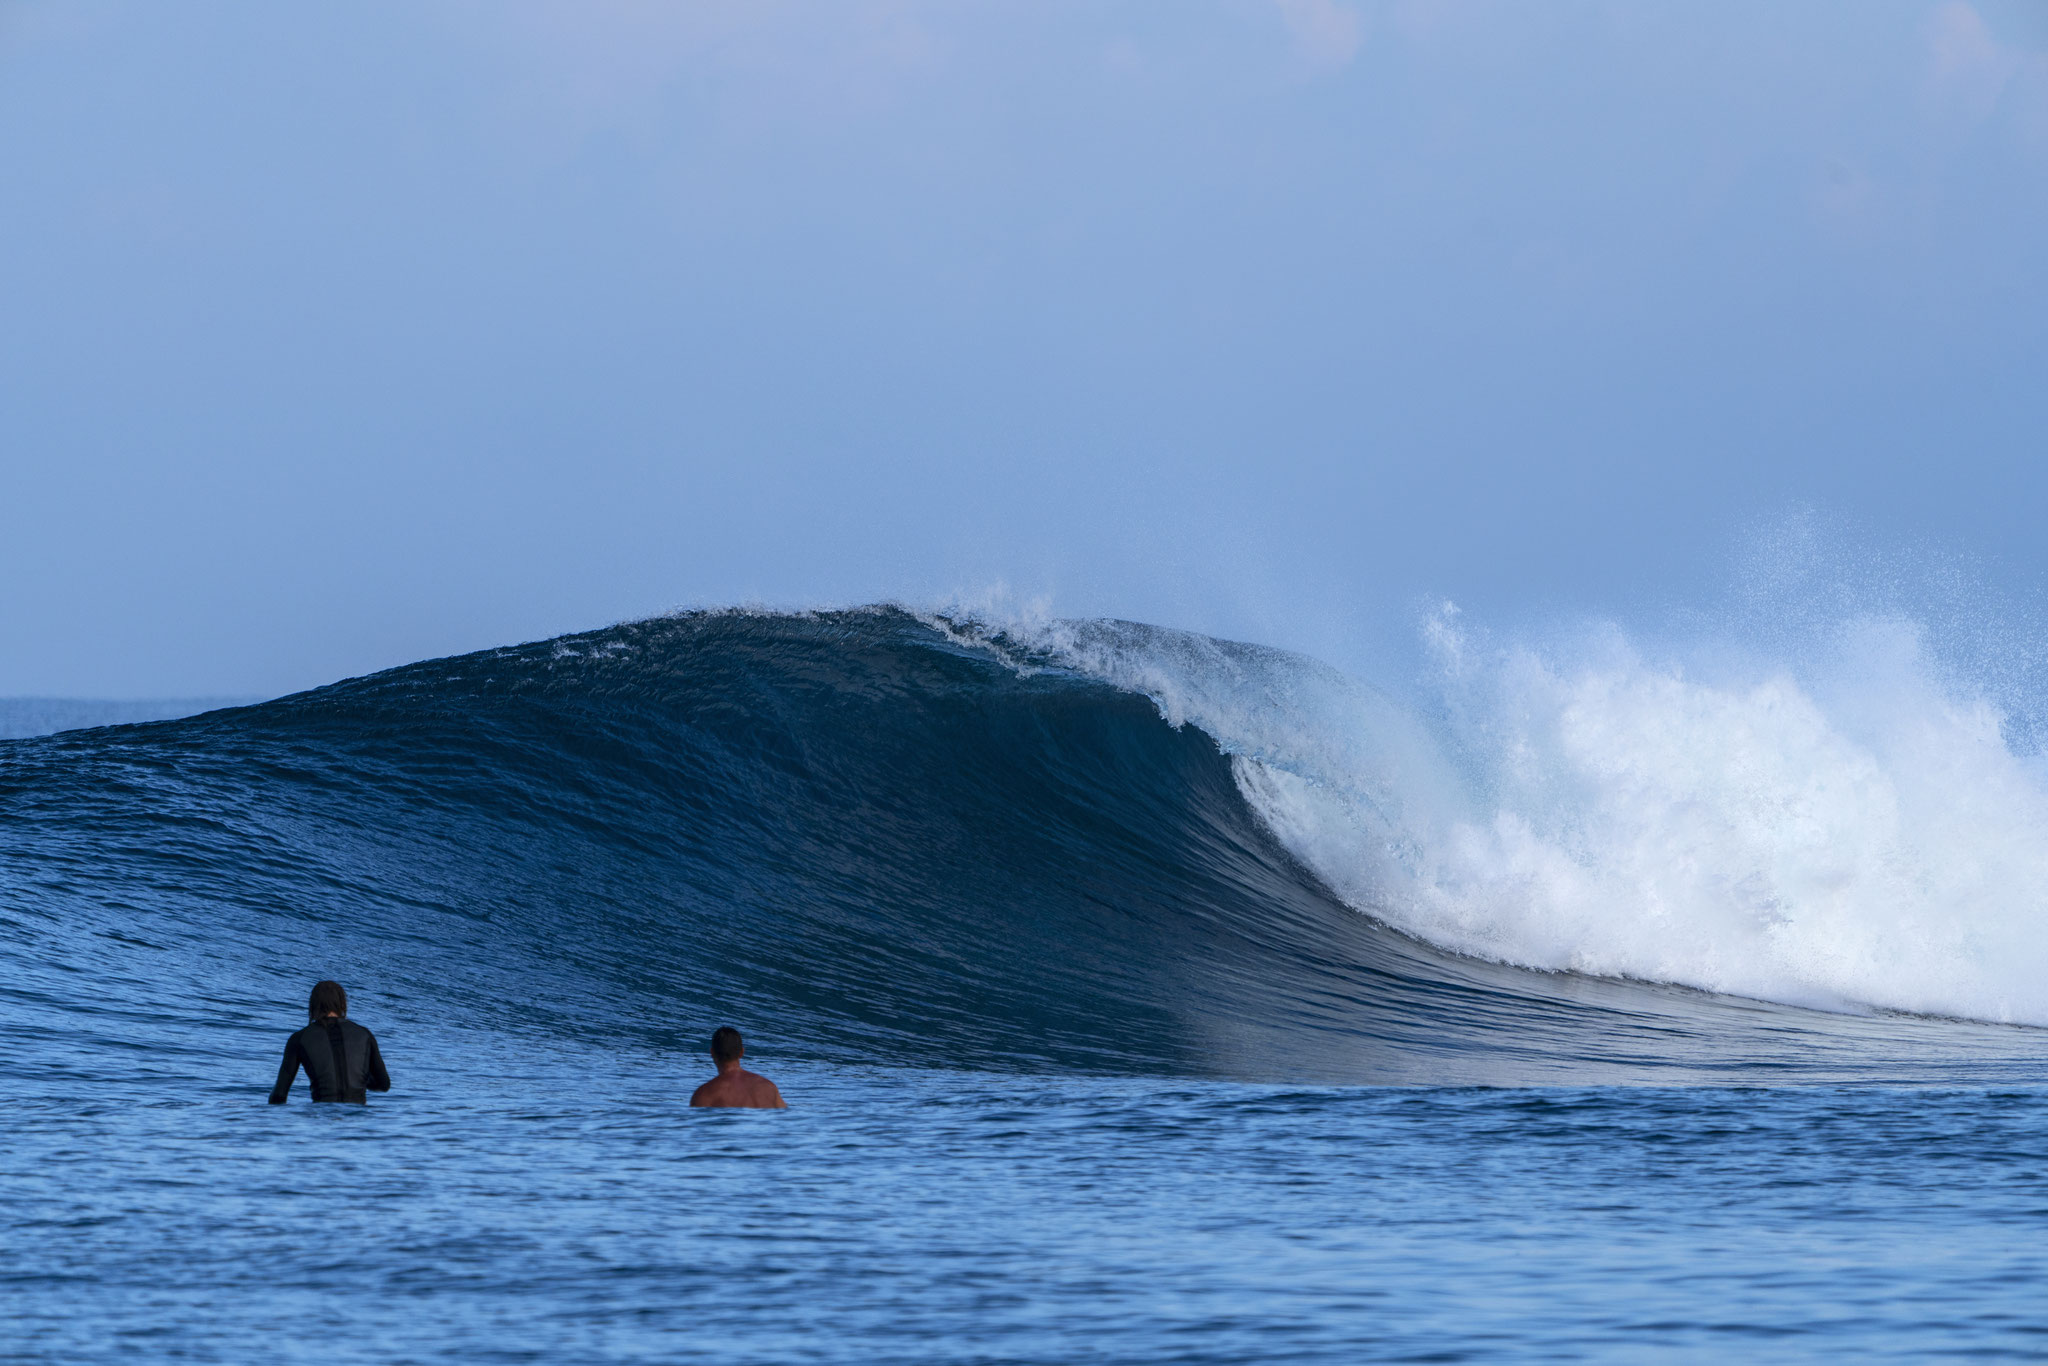 Amazing surf spots for just you and your friends photo: Roger Sharp, Carve Magazine